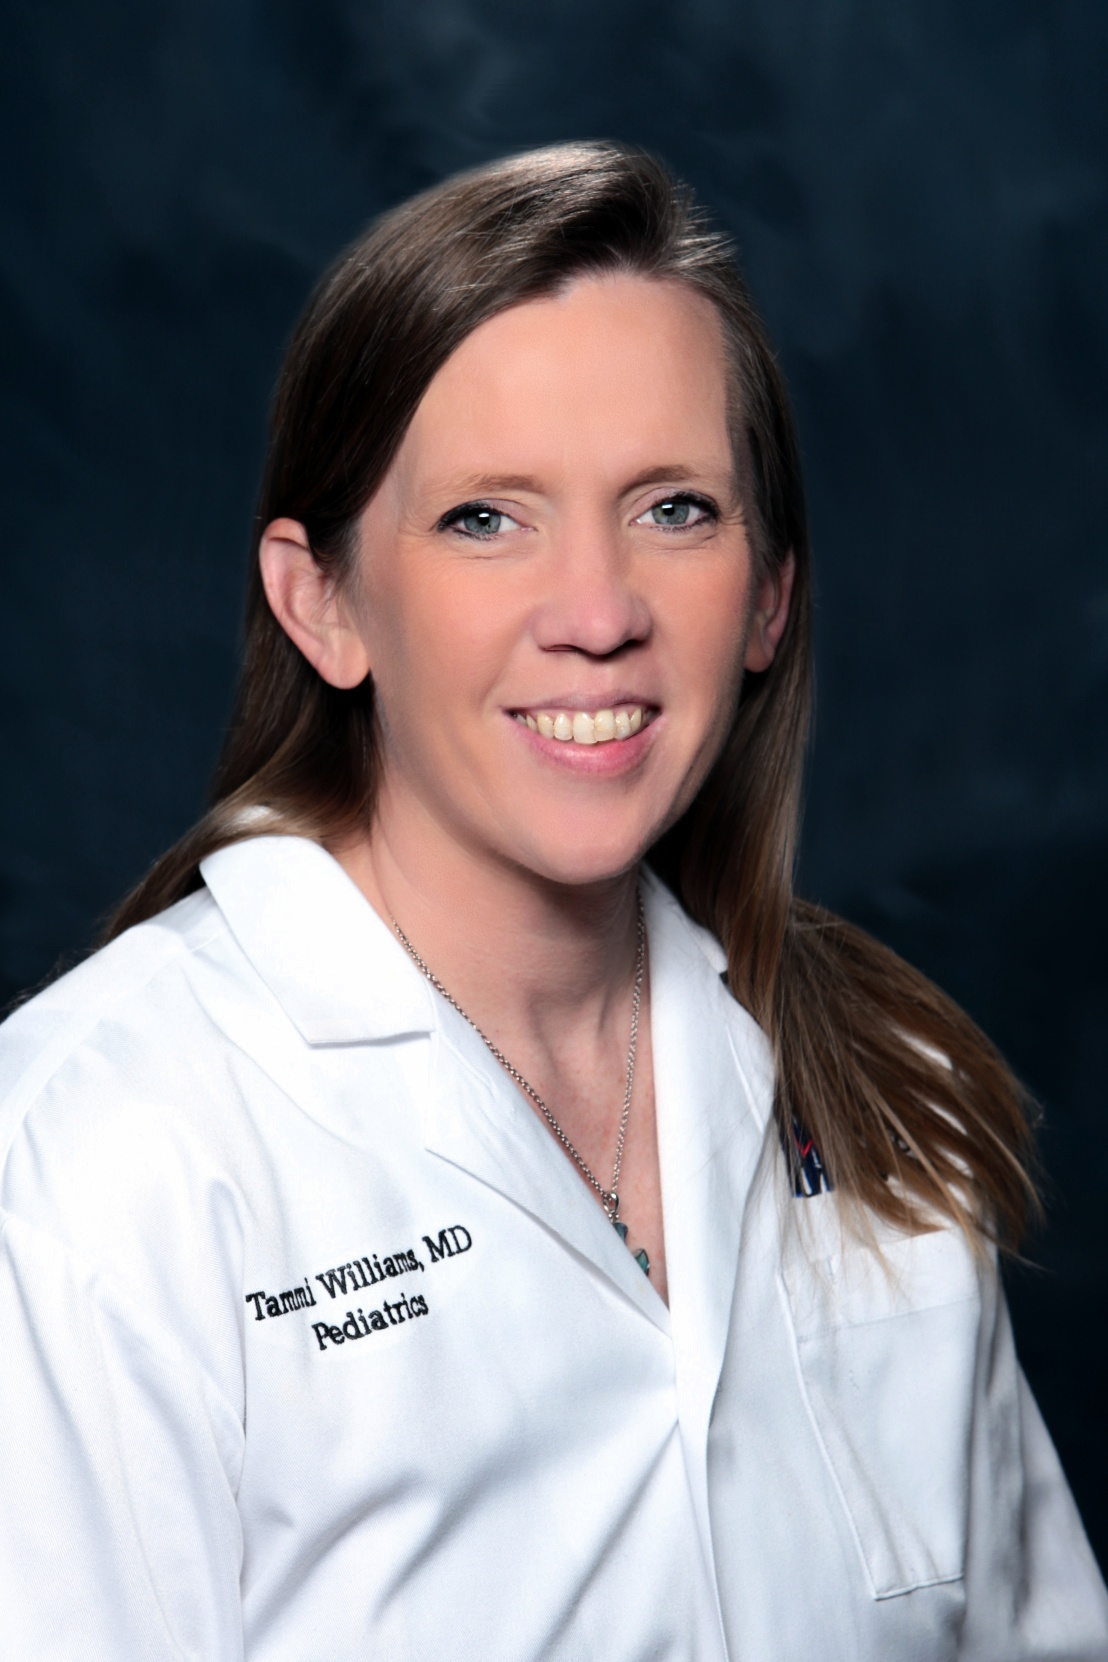 Tammi M Williams, MD